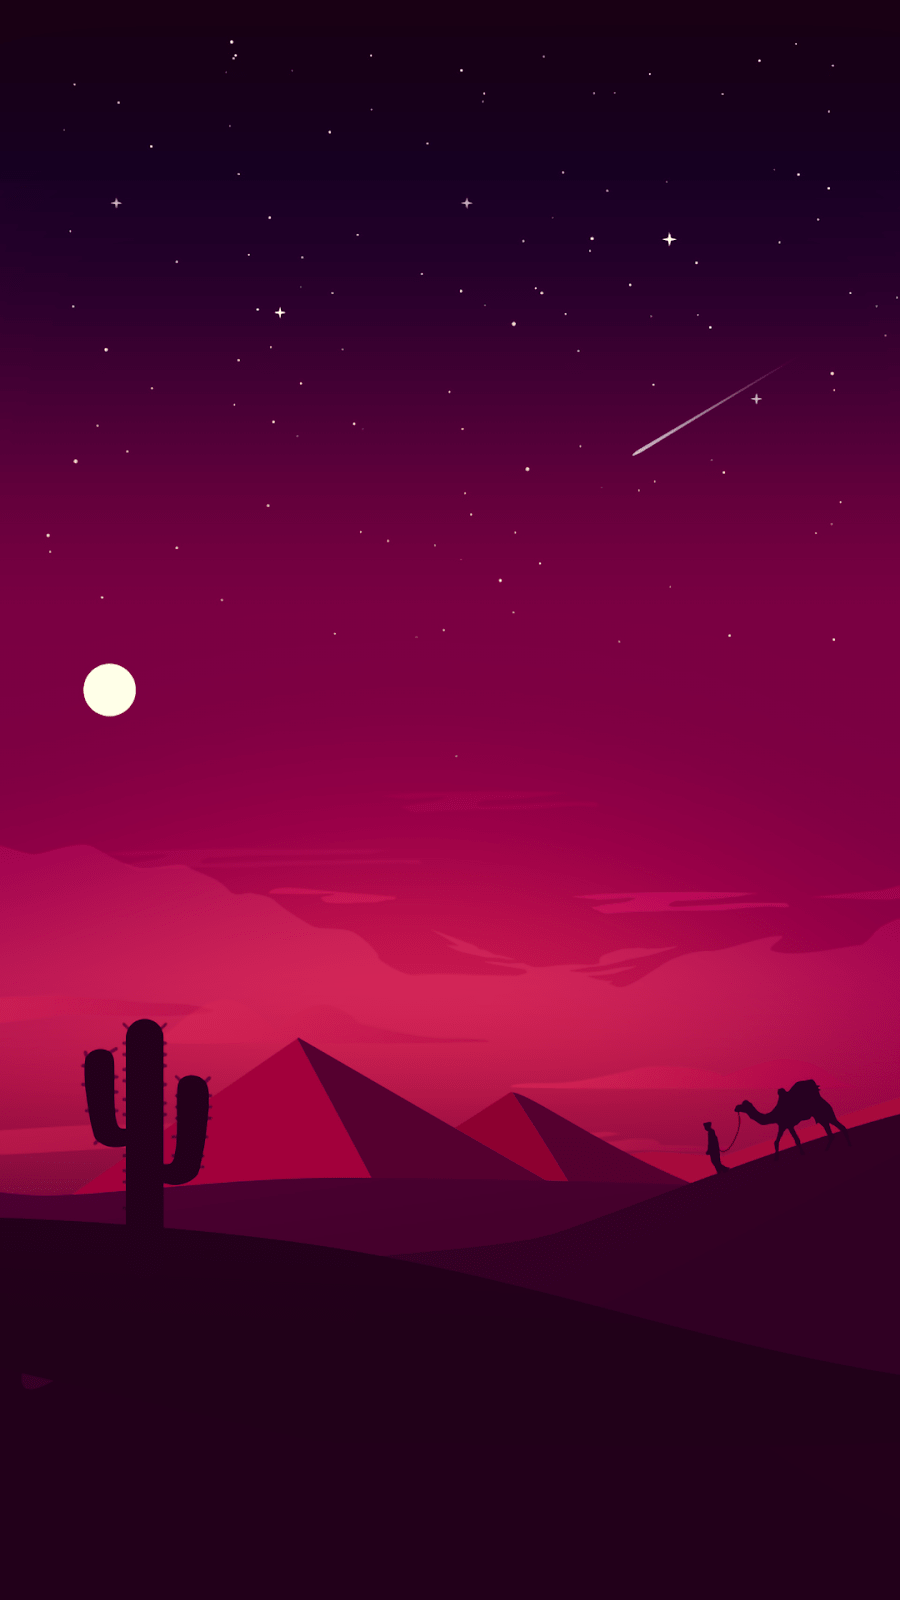 Desert Night Wallpaper